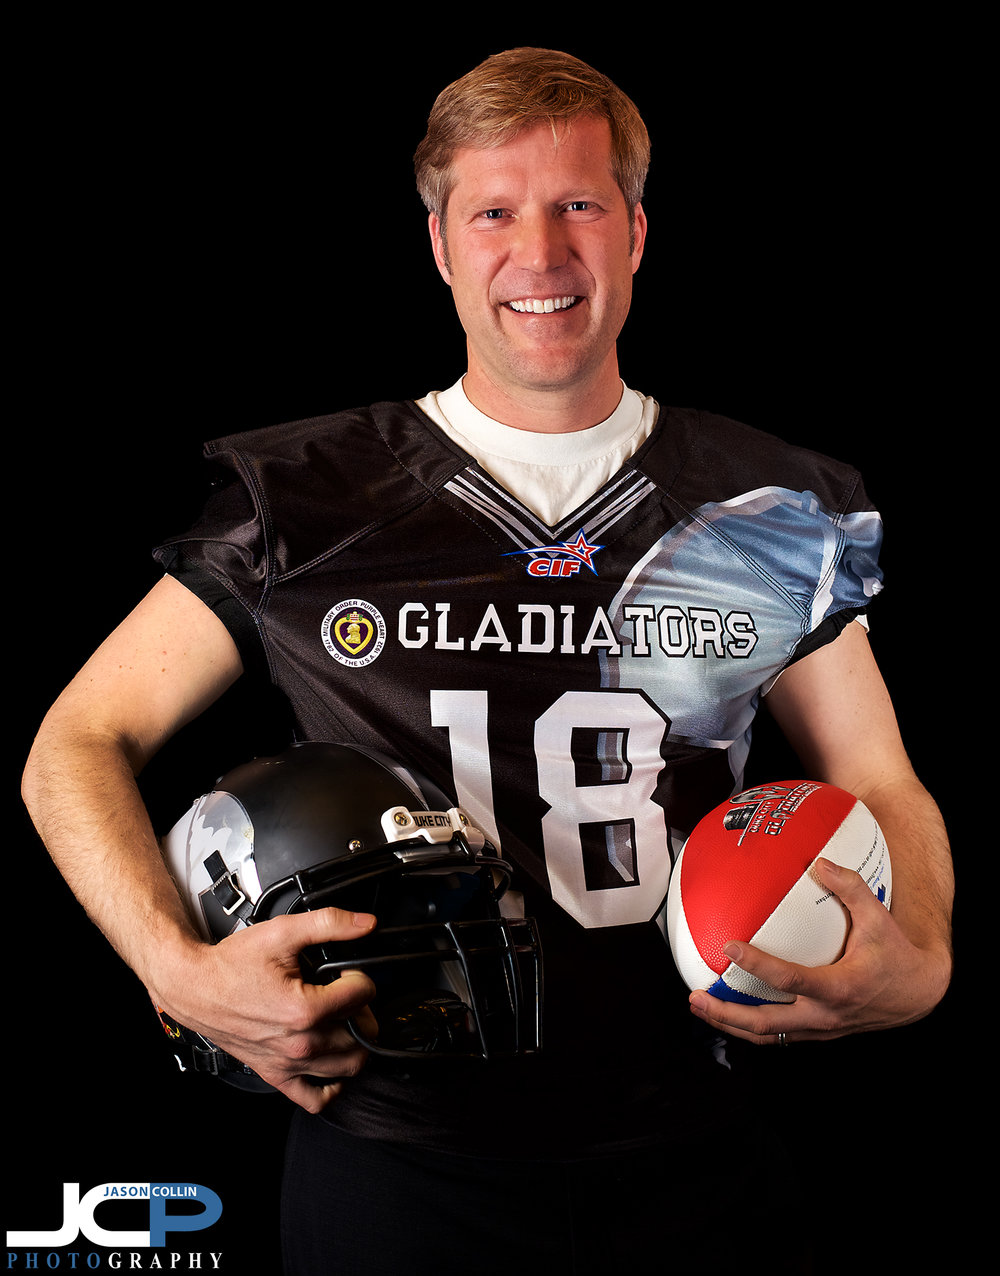 Mayor Tim Keller ready for his arena football game with the Duke City Gladiators! - Nikon D750 with Nikkor 50mm f/1.8G @ f/5.6 1/250th ISO 320 - Strobist: two Cheetahstand 12x55 gridded strip boxes with Nikon SB-800 speedlights to left and right